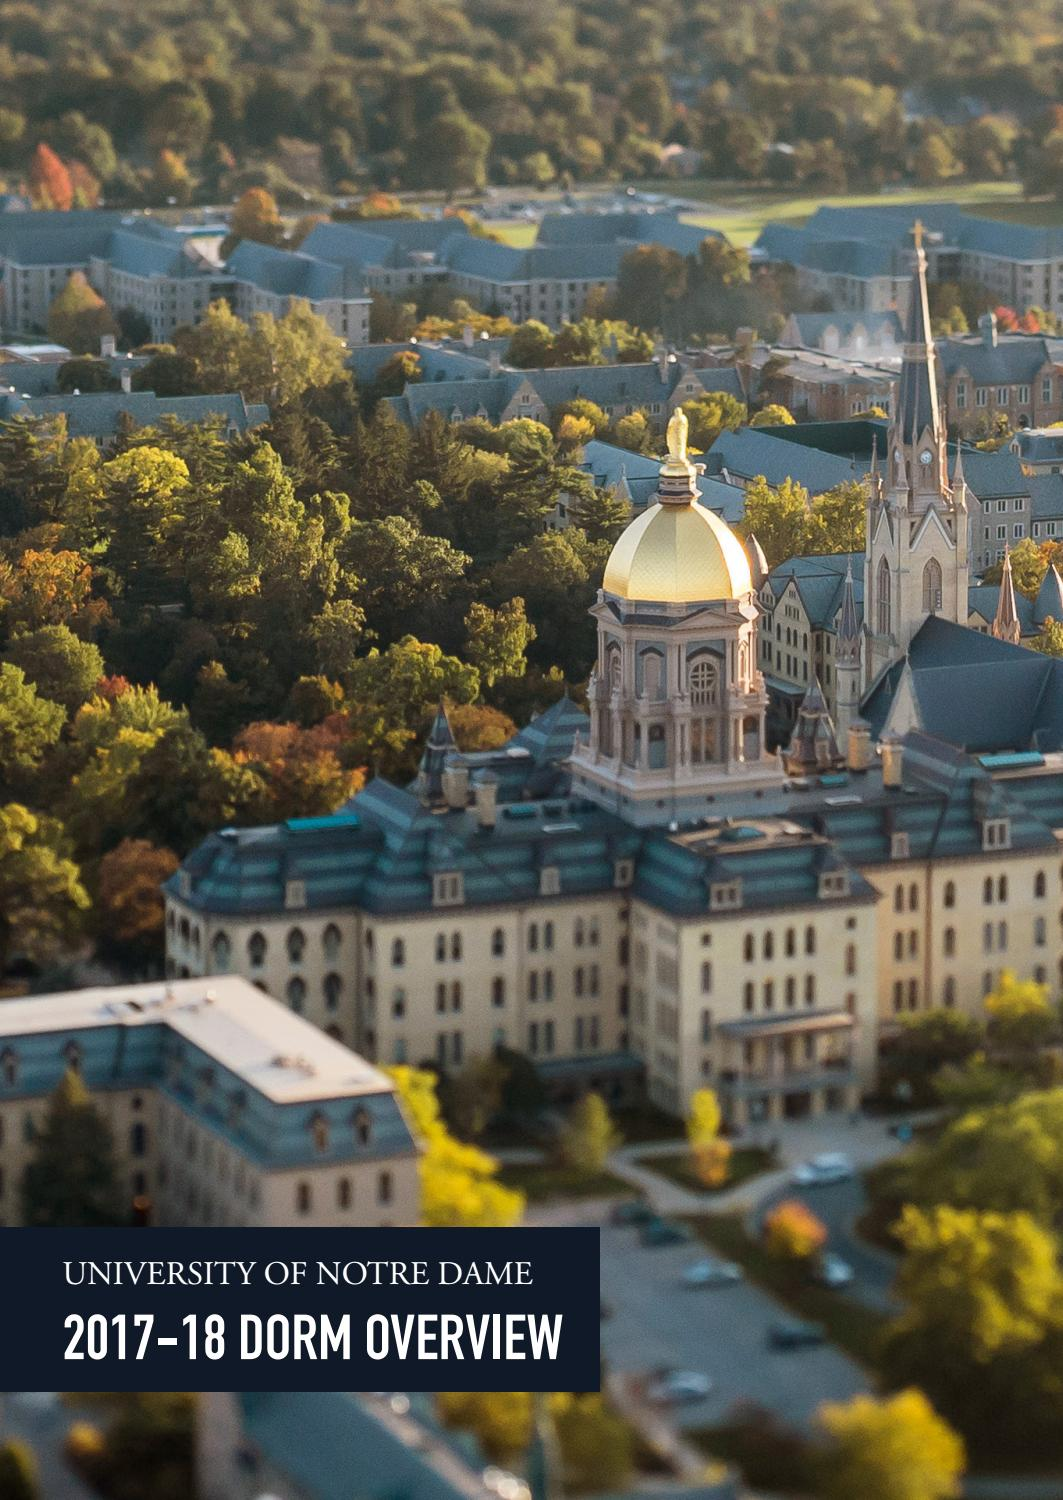 University Of Notre Dame 2017 18 Dorm Overview By Office Of Undergraduate Admissions University Of Notre Dame Issuu